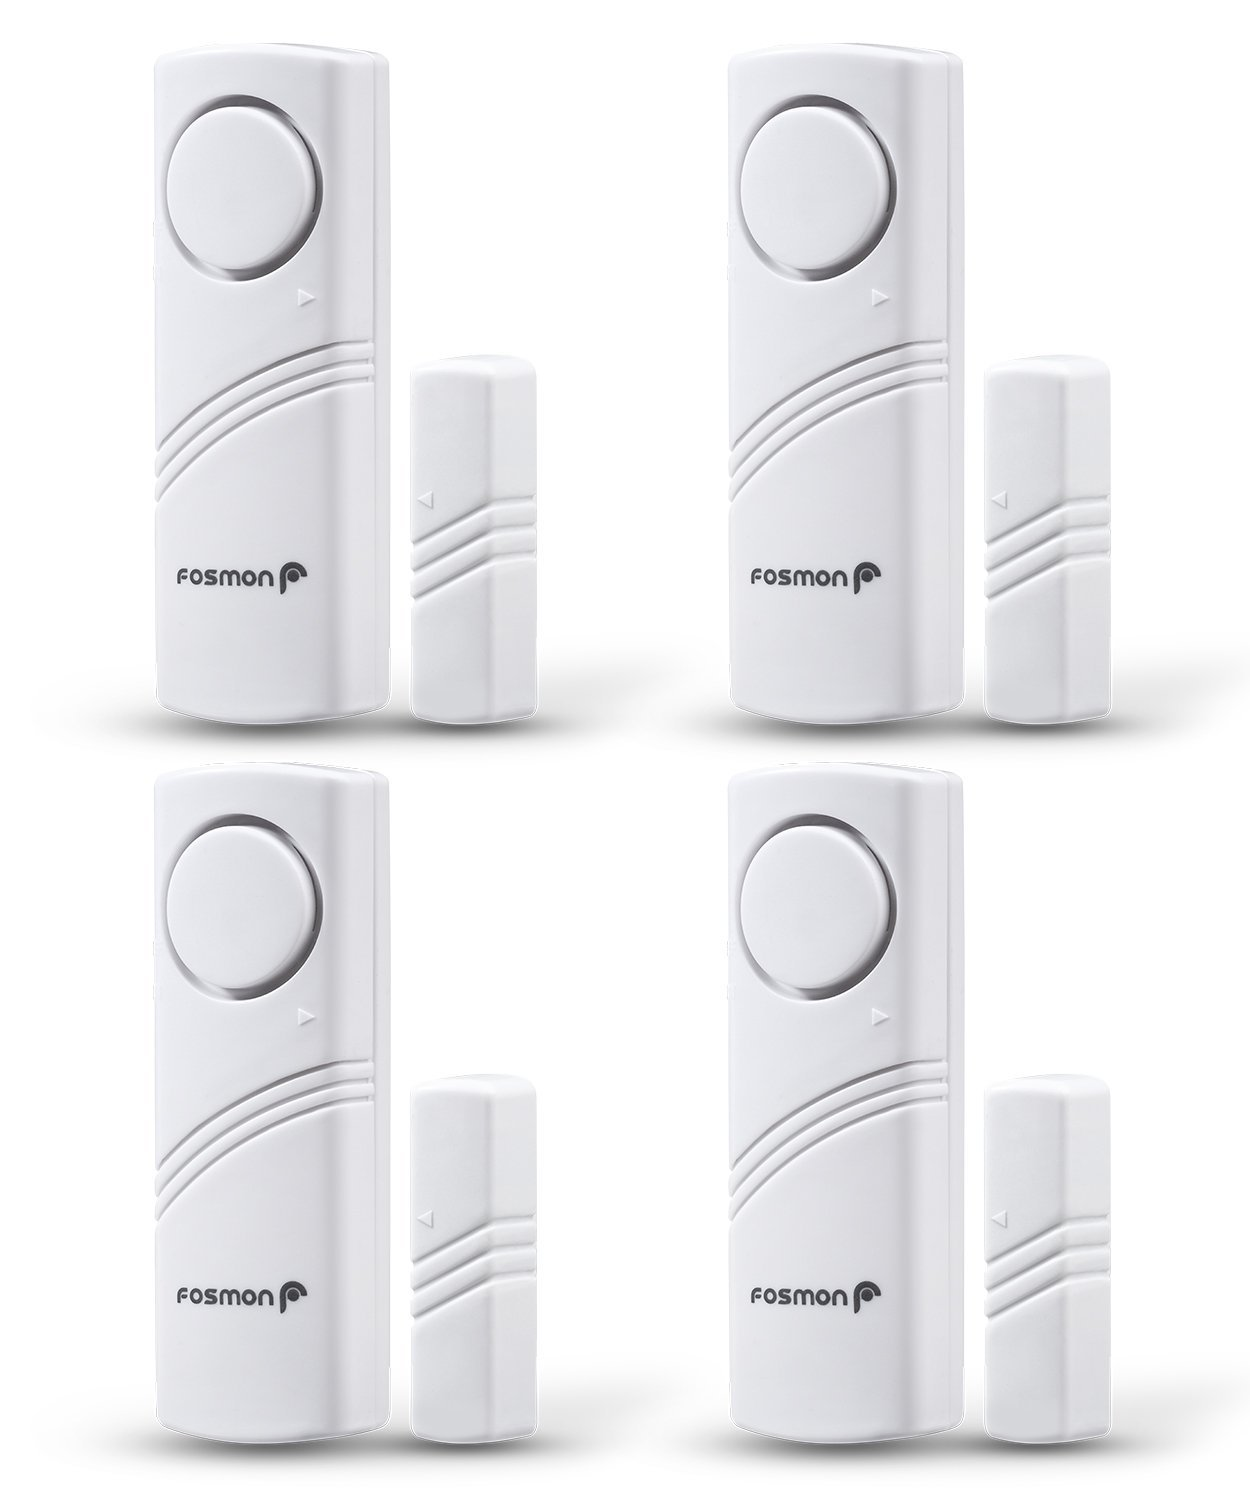 Fosmon Wireless Window and Door Entry Alarm Safety System, Burglar Security Alert Sensor, Easy to Install Battery Operated Loud 115db Siren for Home, Business, Doors, Windows, Garages - 4 Pack